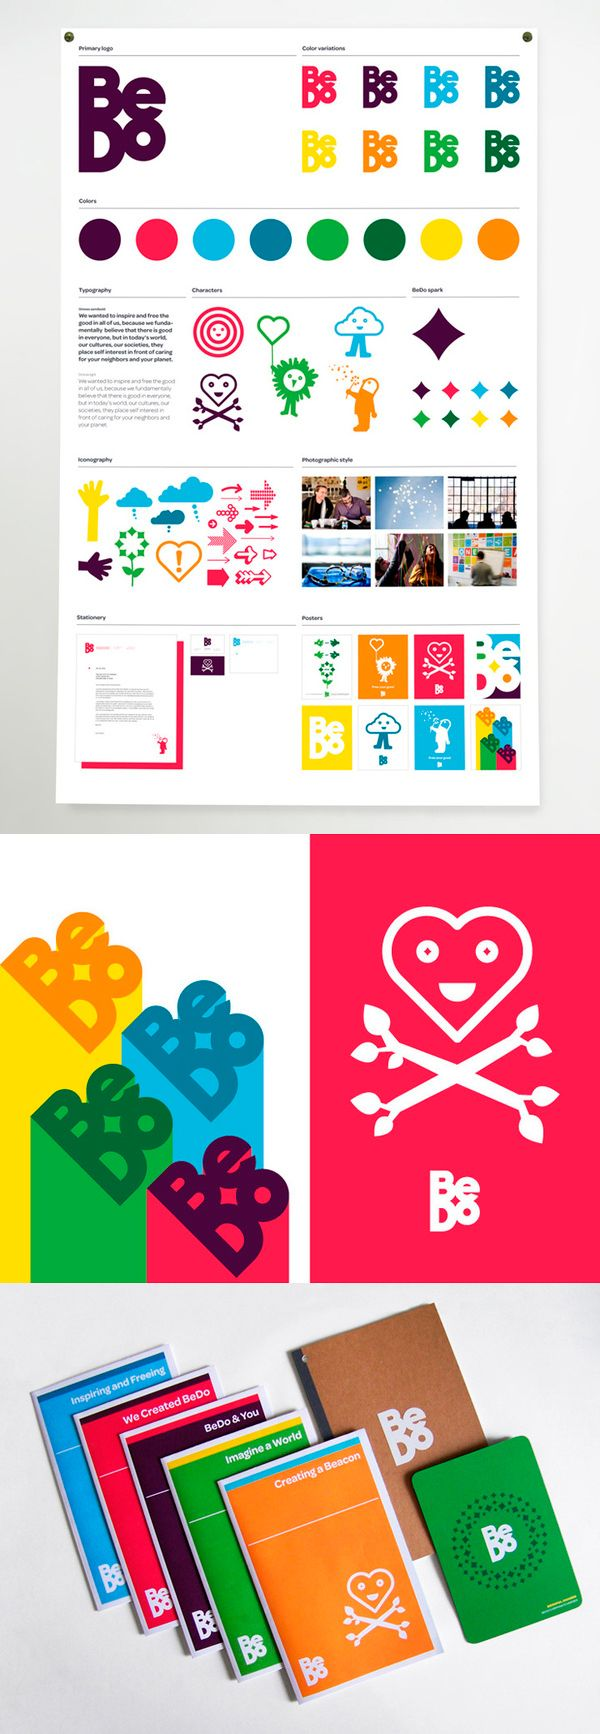 visual identity / bedo